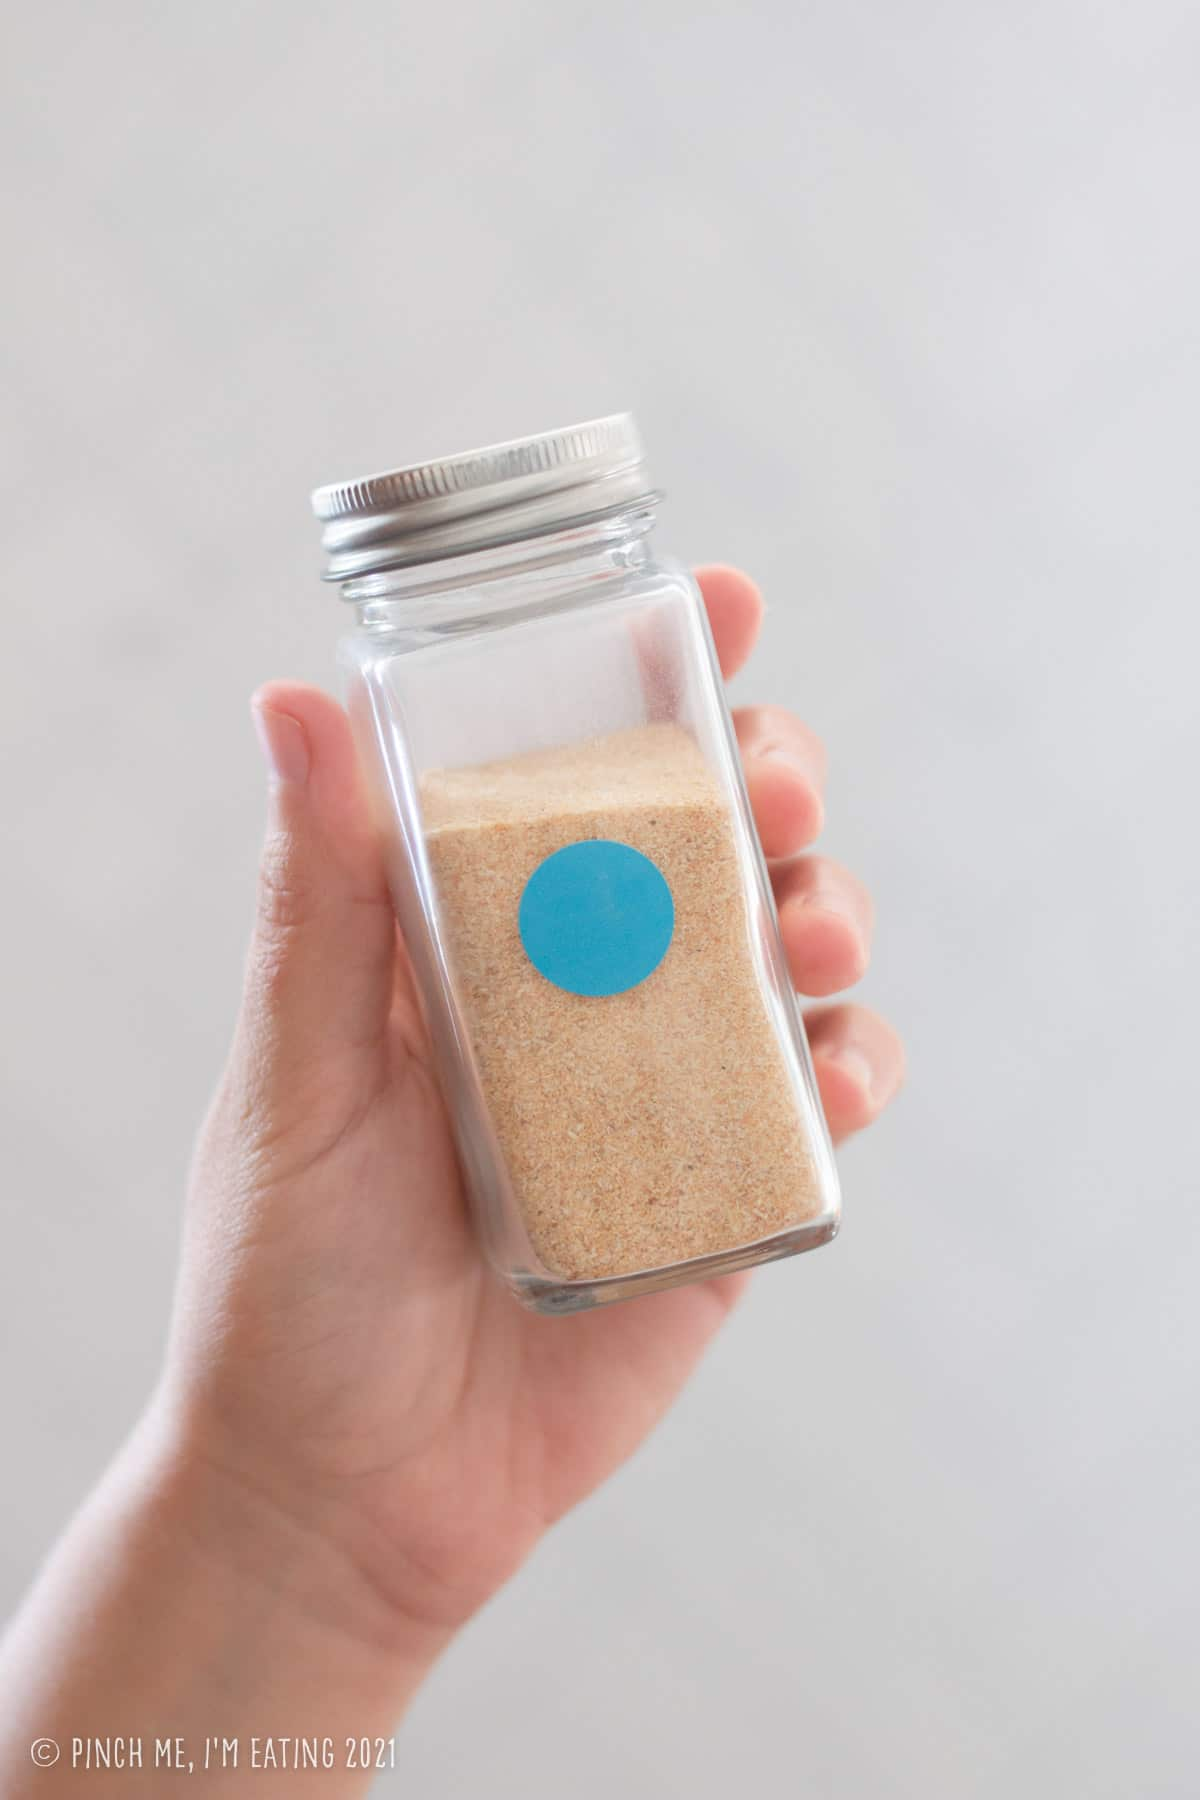 Hand holding glass jar of garlic powder with round blue sticker to denote backstock is available